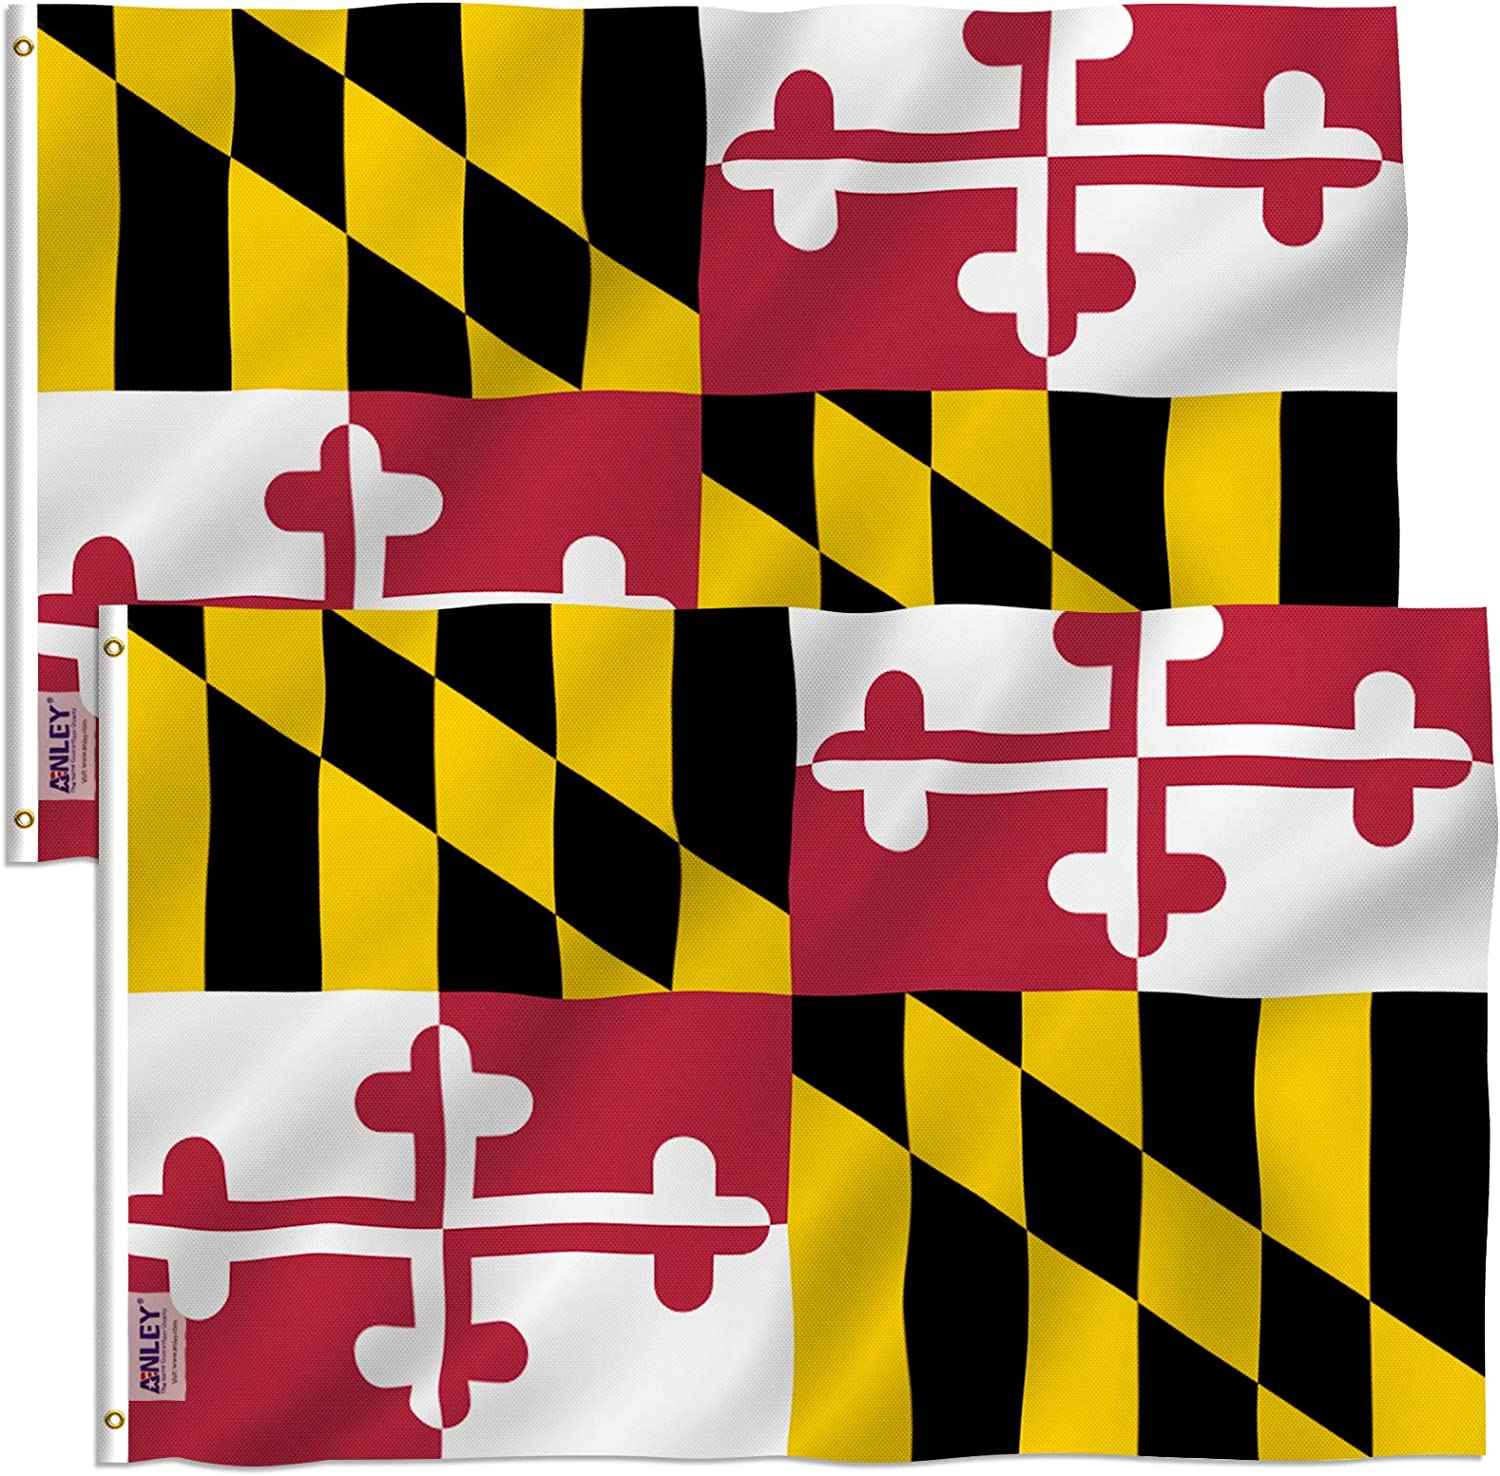 Anley Pack of 2 Fly Breeze 3x5 Foot Maryland State Polyester Flag - Vivid Color and Fade Proof - Canvas Header and Double Stitched - Maryland MD Flags with Brass Grommets 3 X 5 Ft